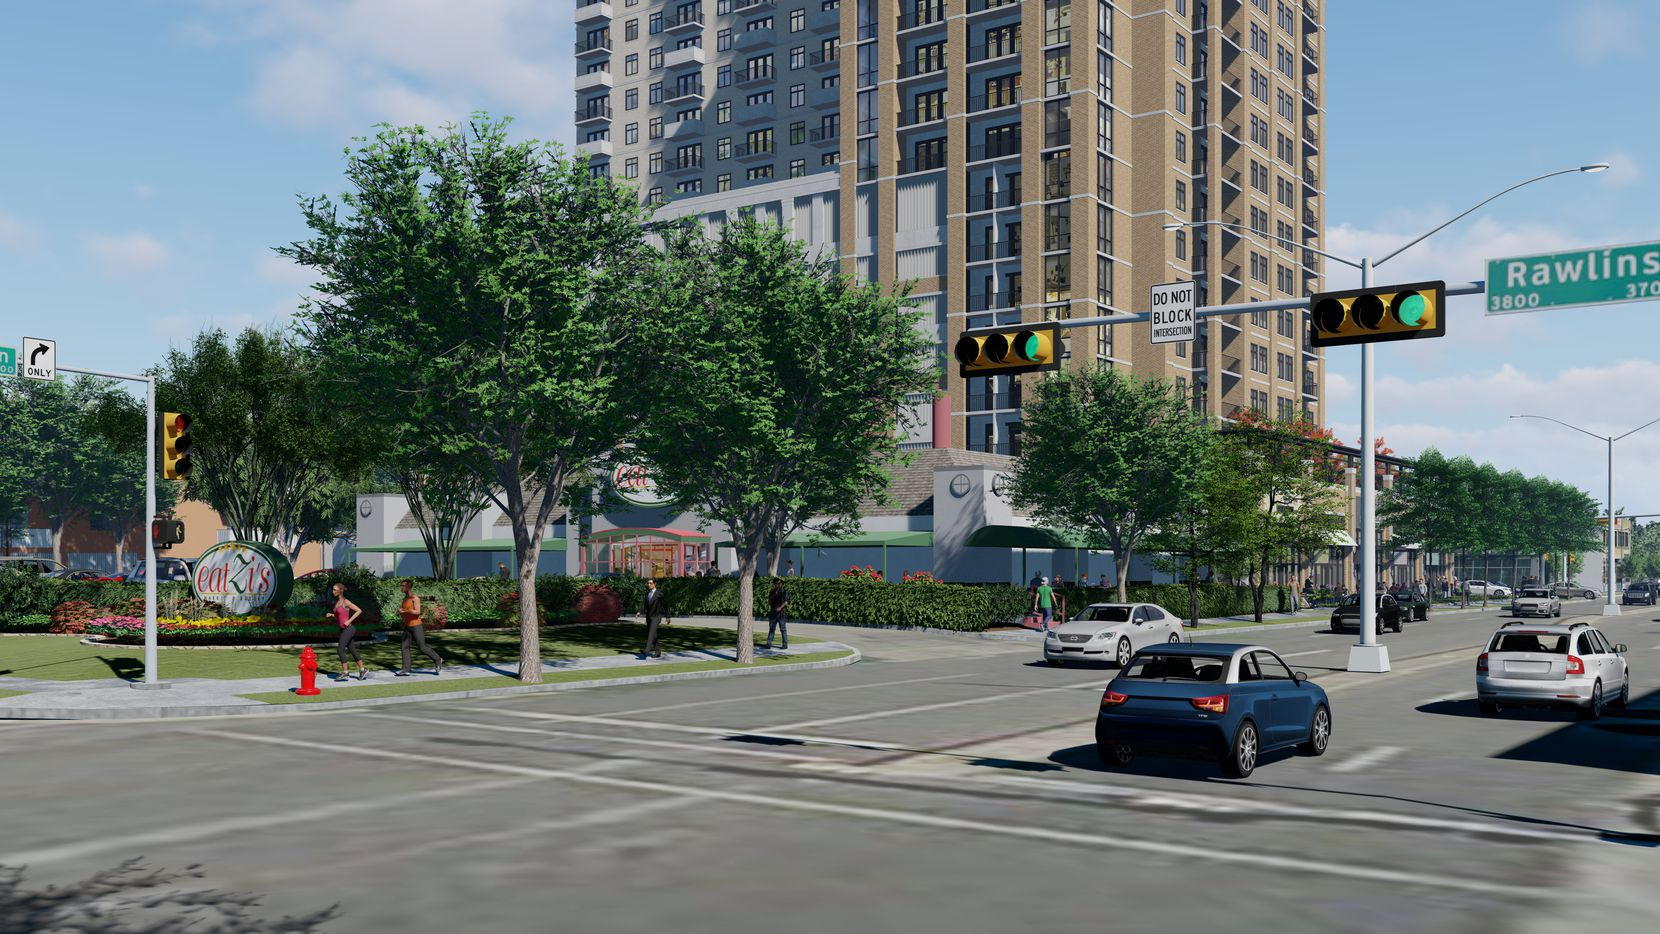 The apartments would be built next door to the Eatzi's on Oak Lawn in Dallas.